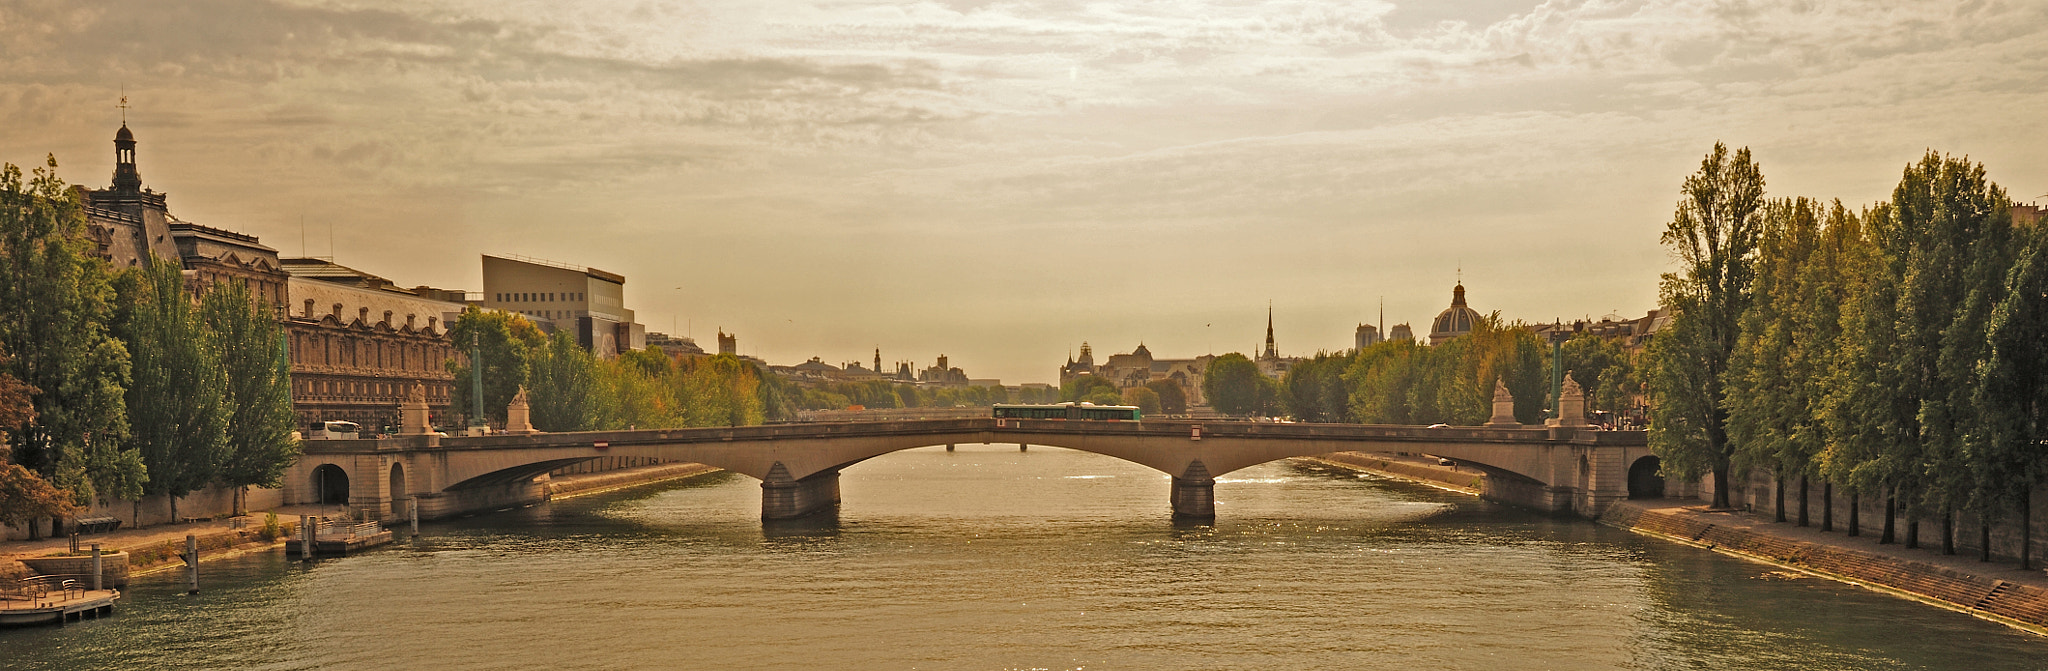 Photograph Bridge over the Seine by Long Zhu on 500px